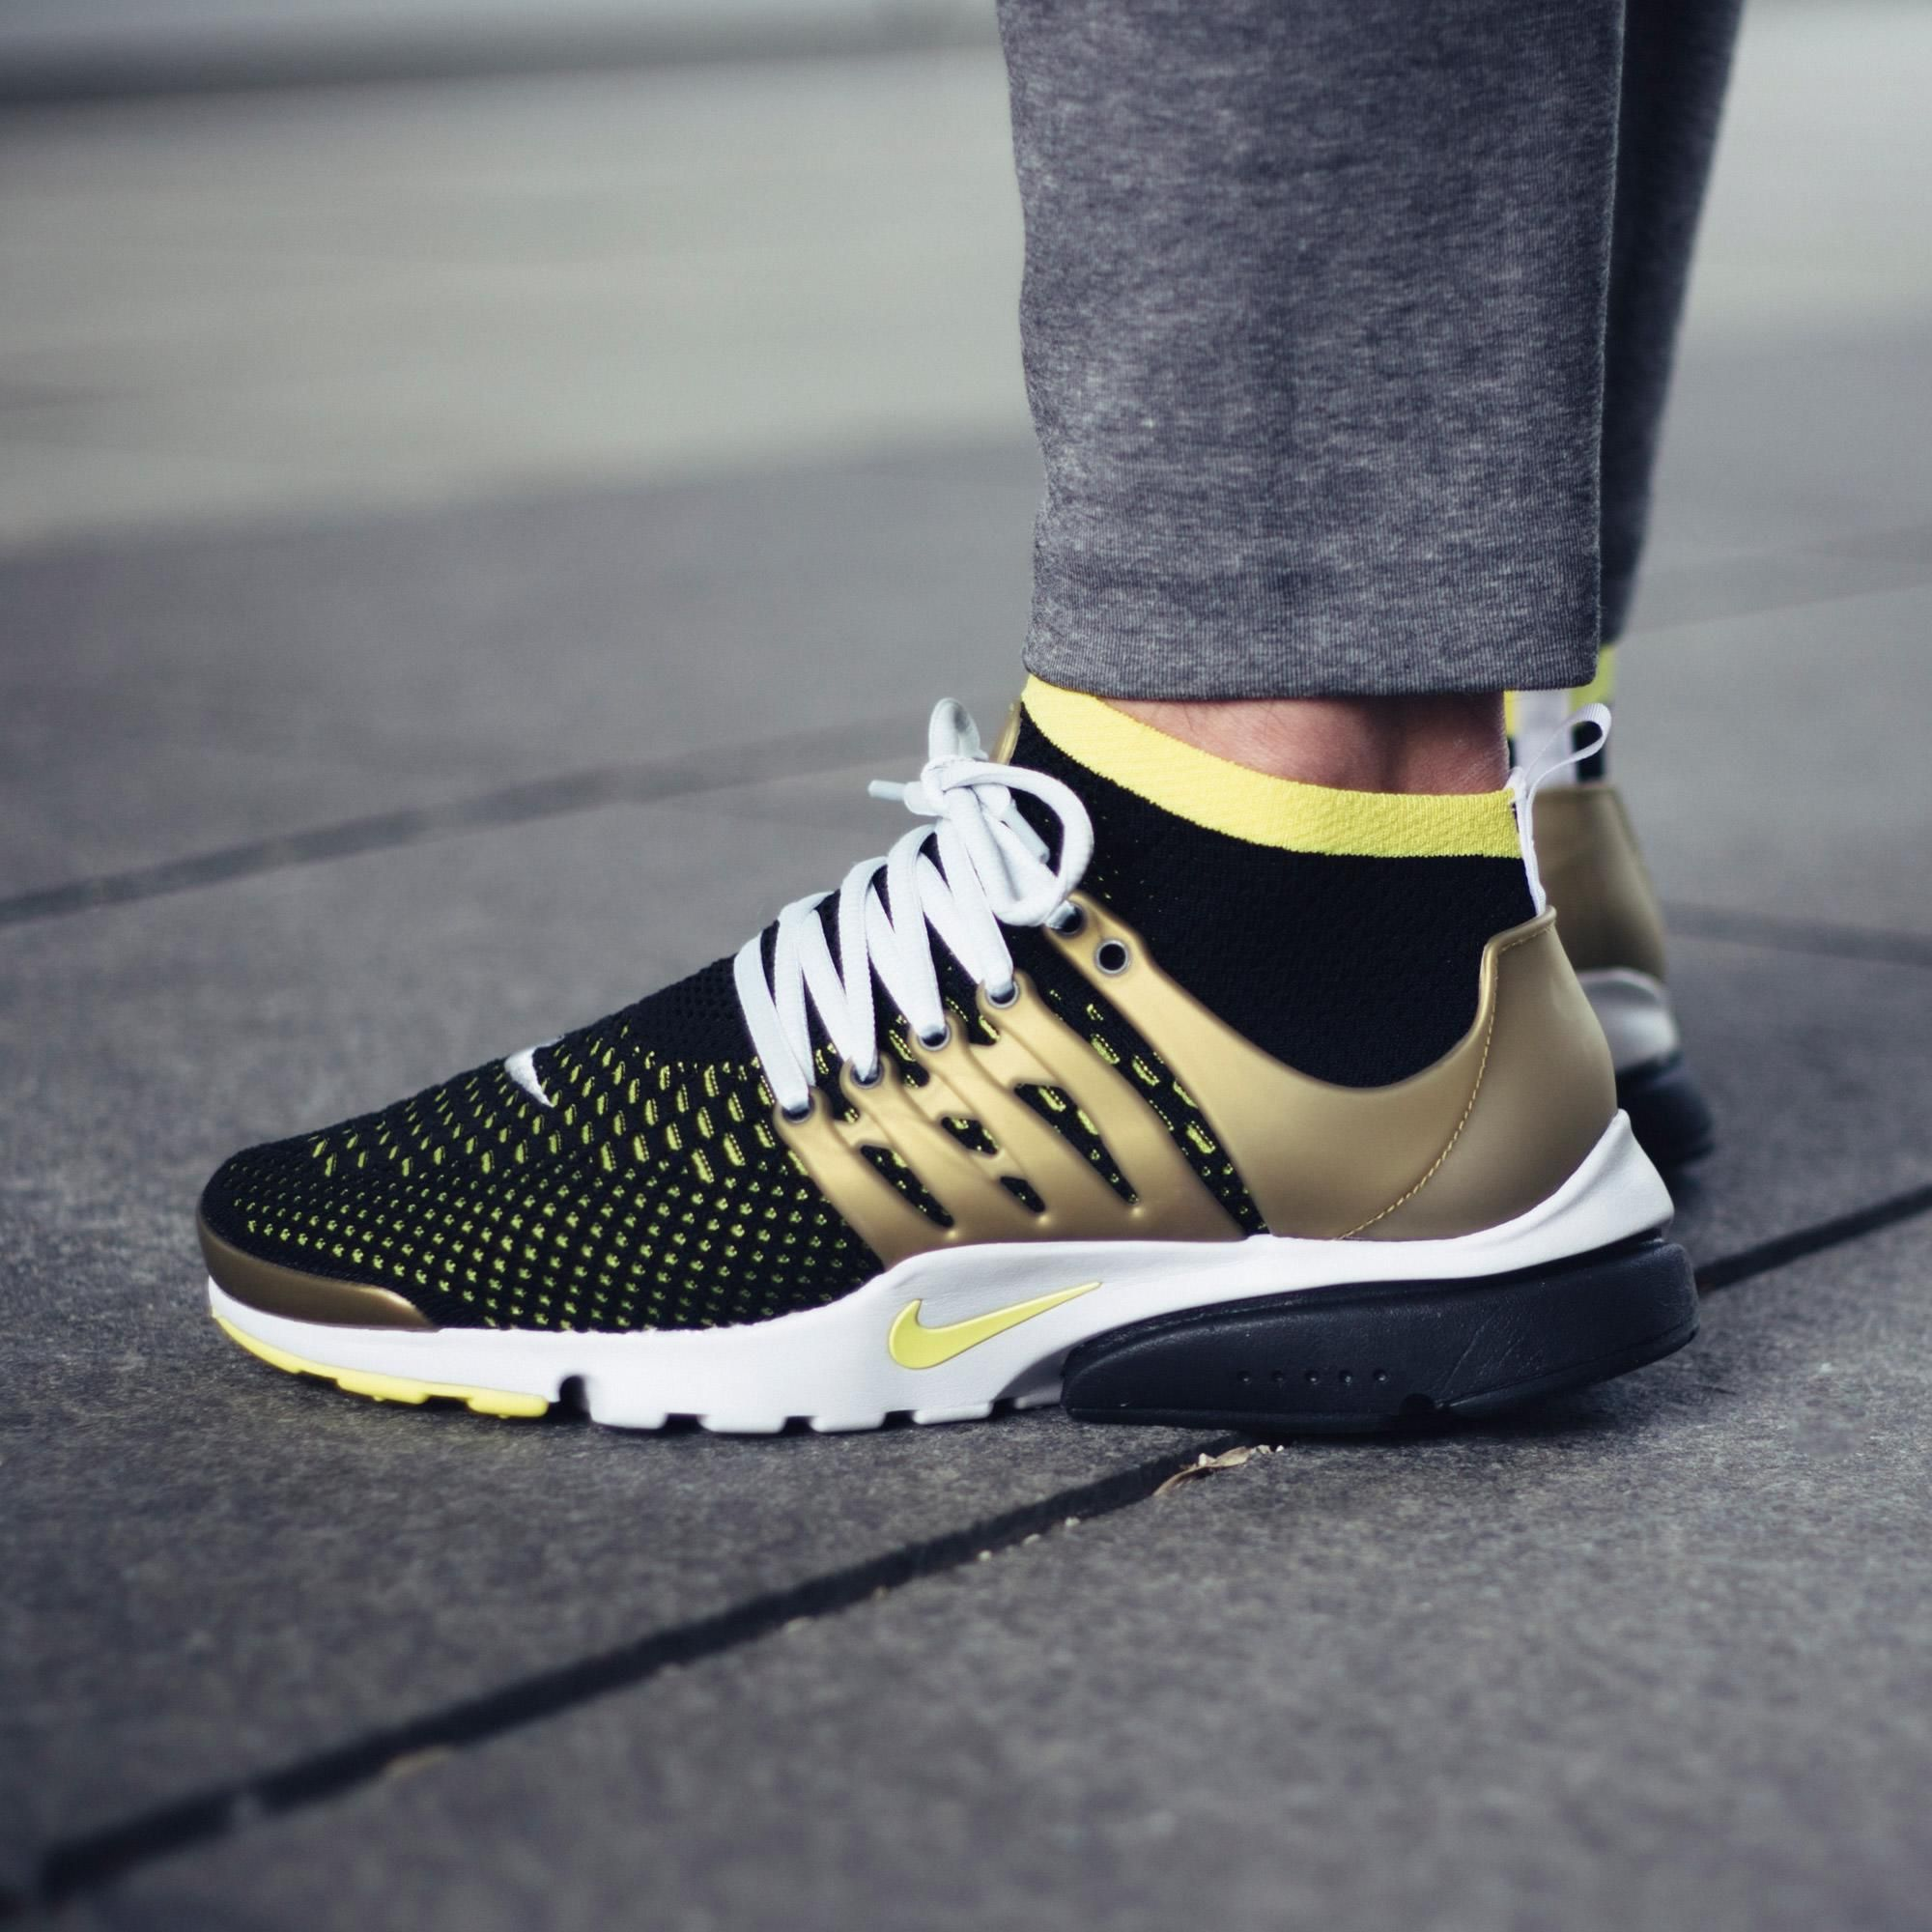 timeless design 50d1d 1ffcd Another Look At The Nike Air Presto Flyknit Ultra Black   Yellow   Gold